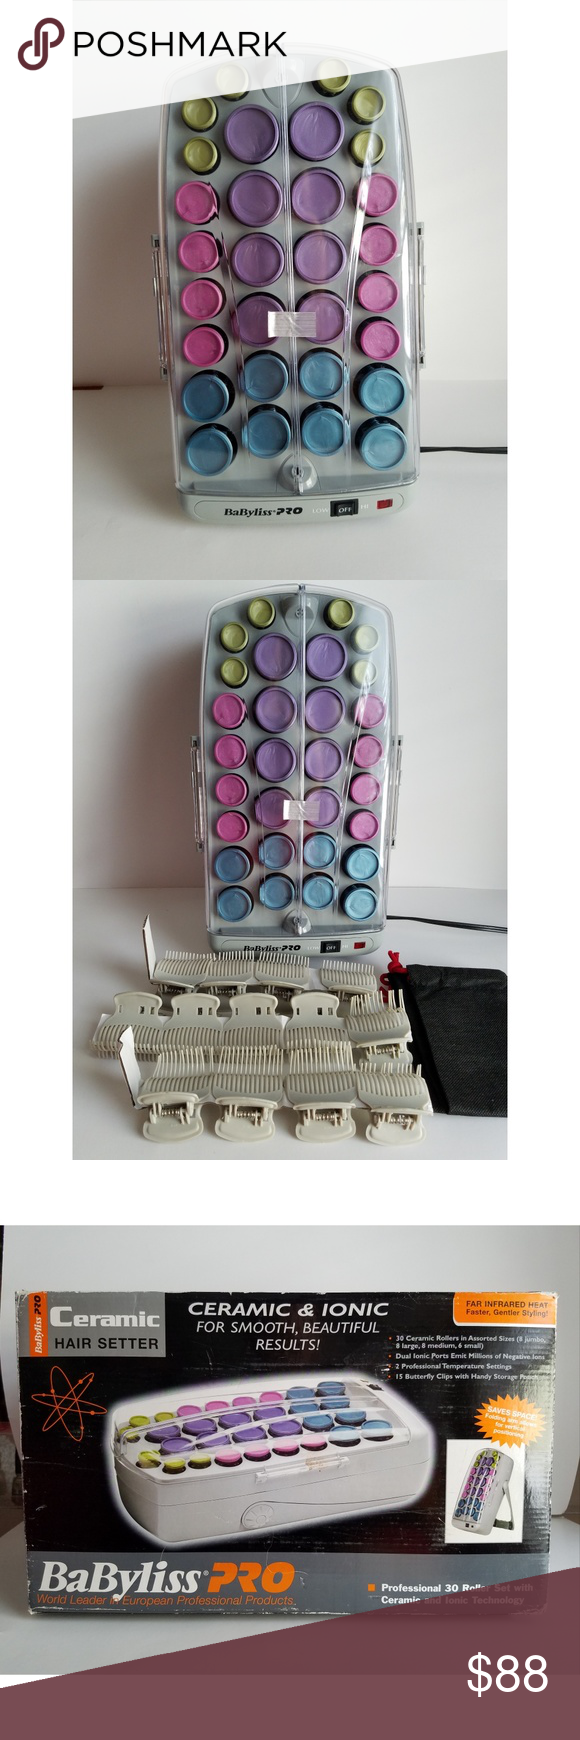 Babyliss Pro Ceramic Ionic 30 Roller Hair Setter Babyliss Pro Ceramic Ionic 30 Roller Hair Setter Brand New Never Used Storage Pouch Babyliss Things To Sell